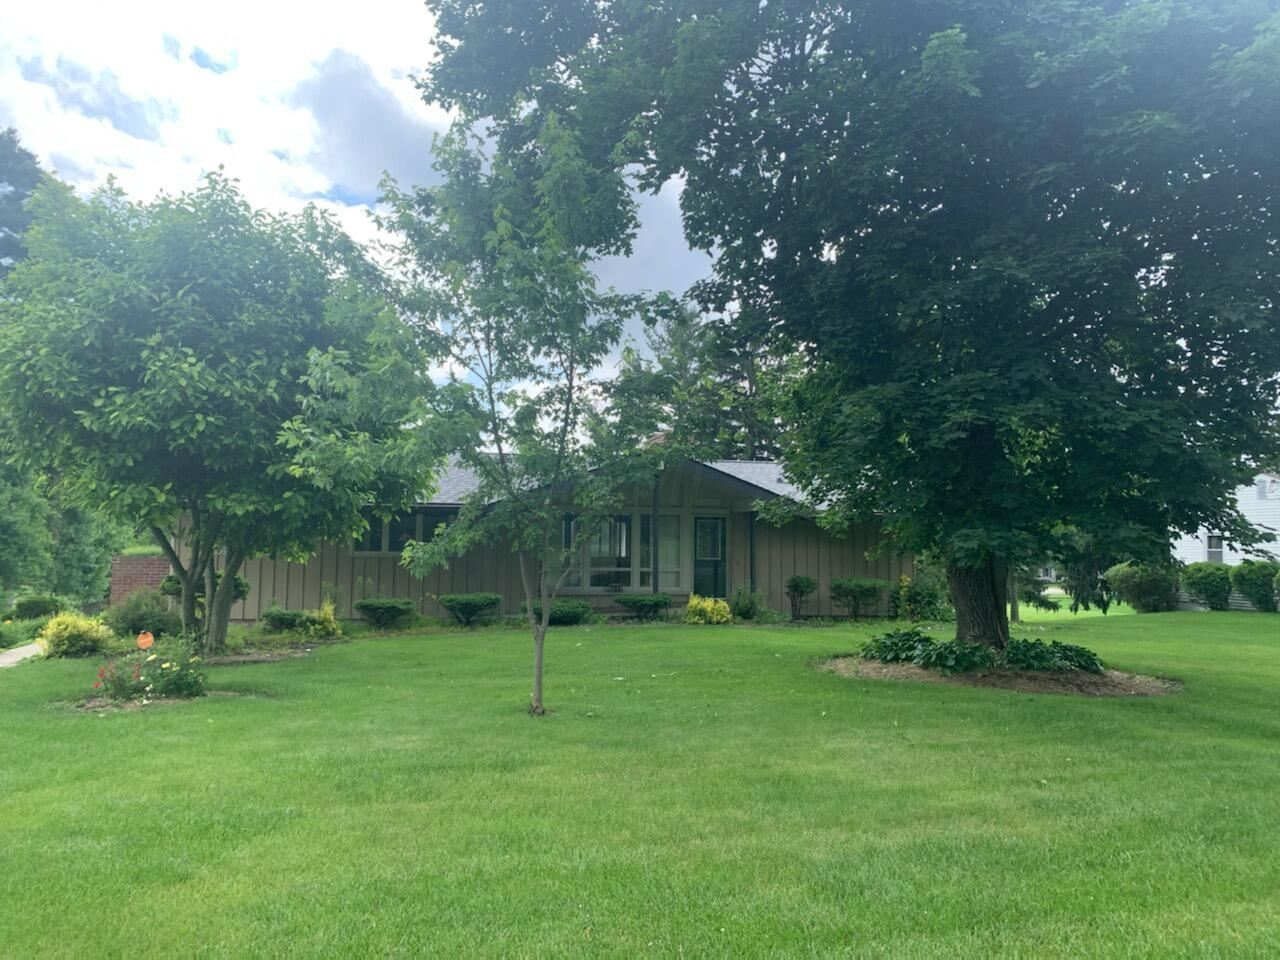 Photo for 792 Uhler Road, Marion, OH 43302 (MLS # 221020645)